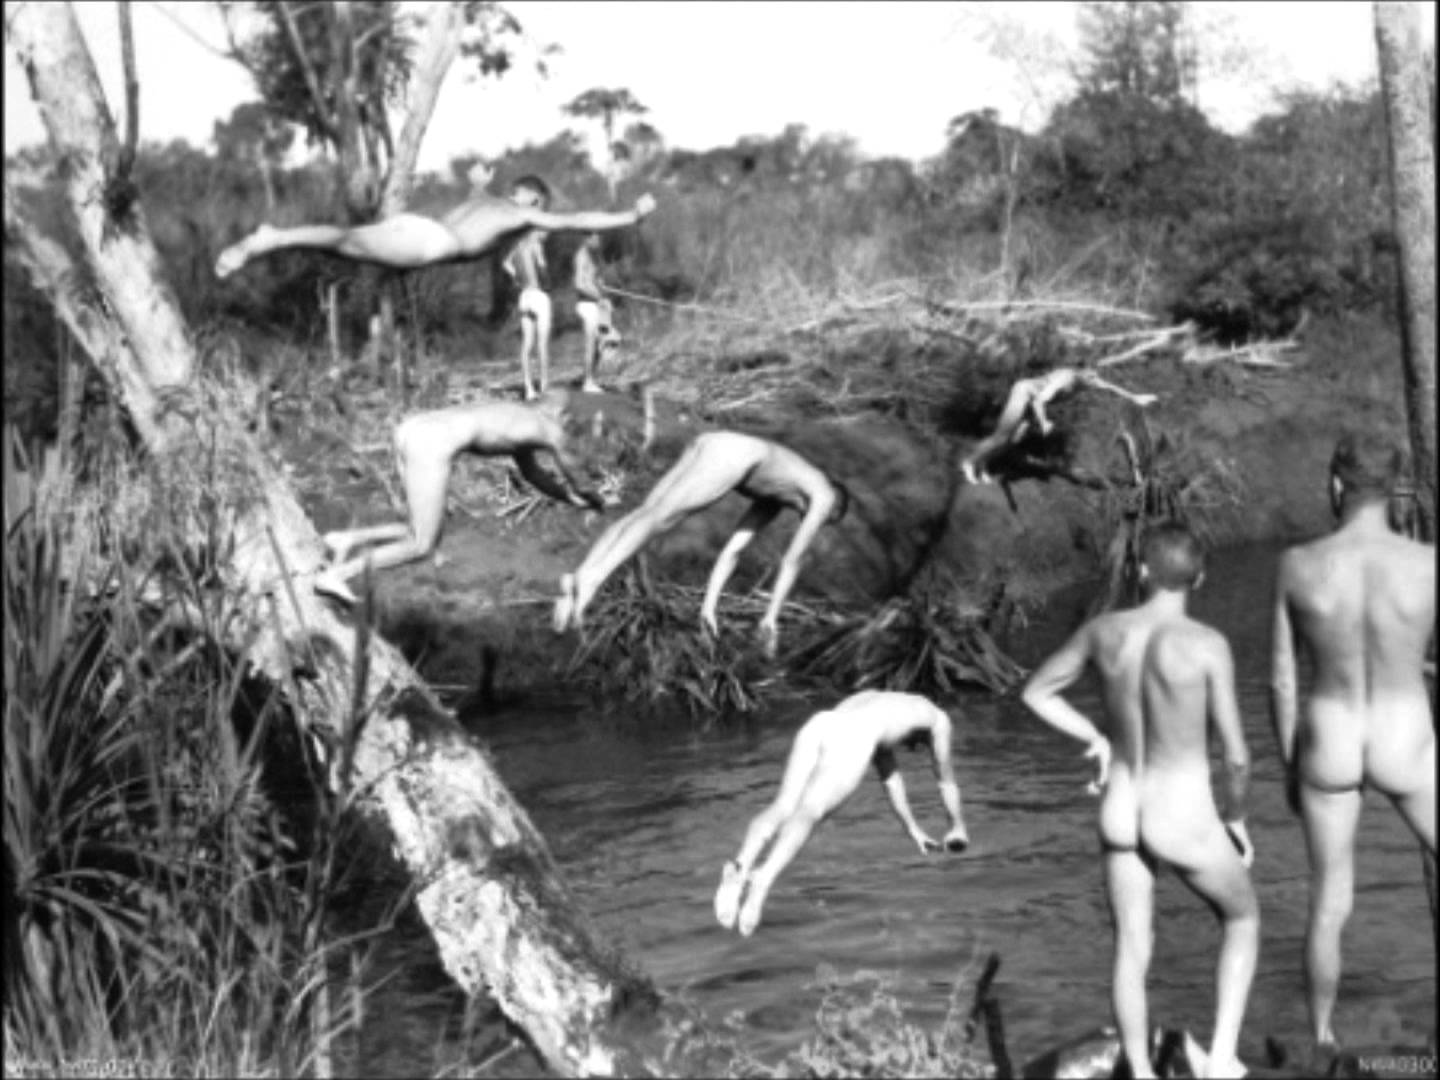 File:RAAF 1943 swimming nude.jpeg